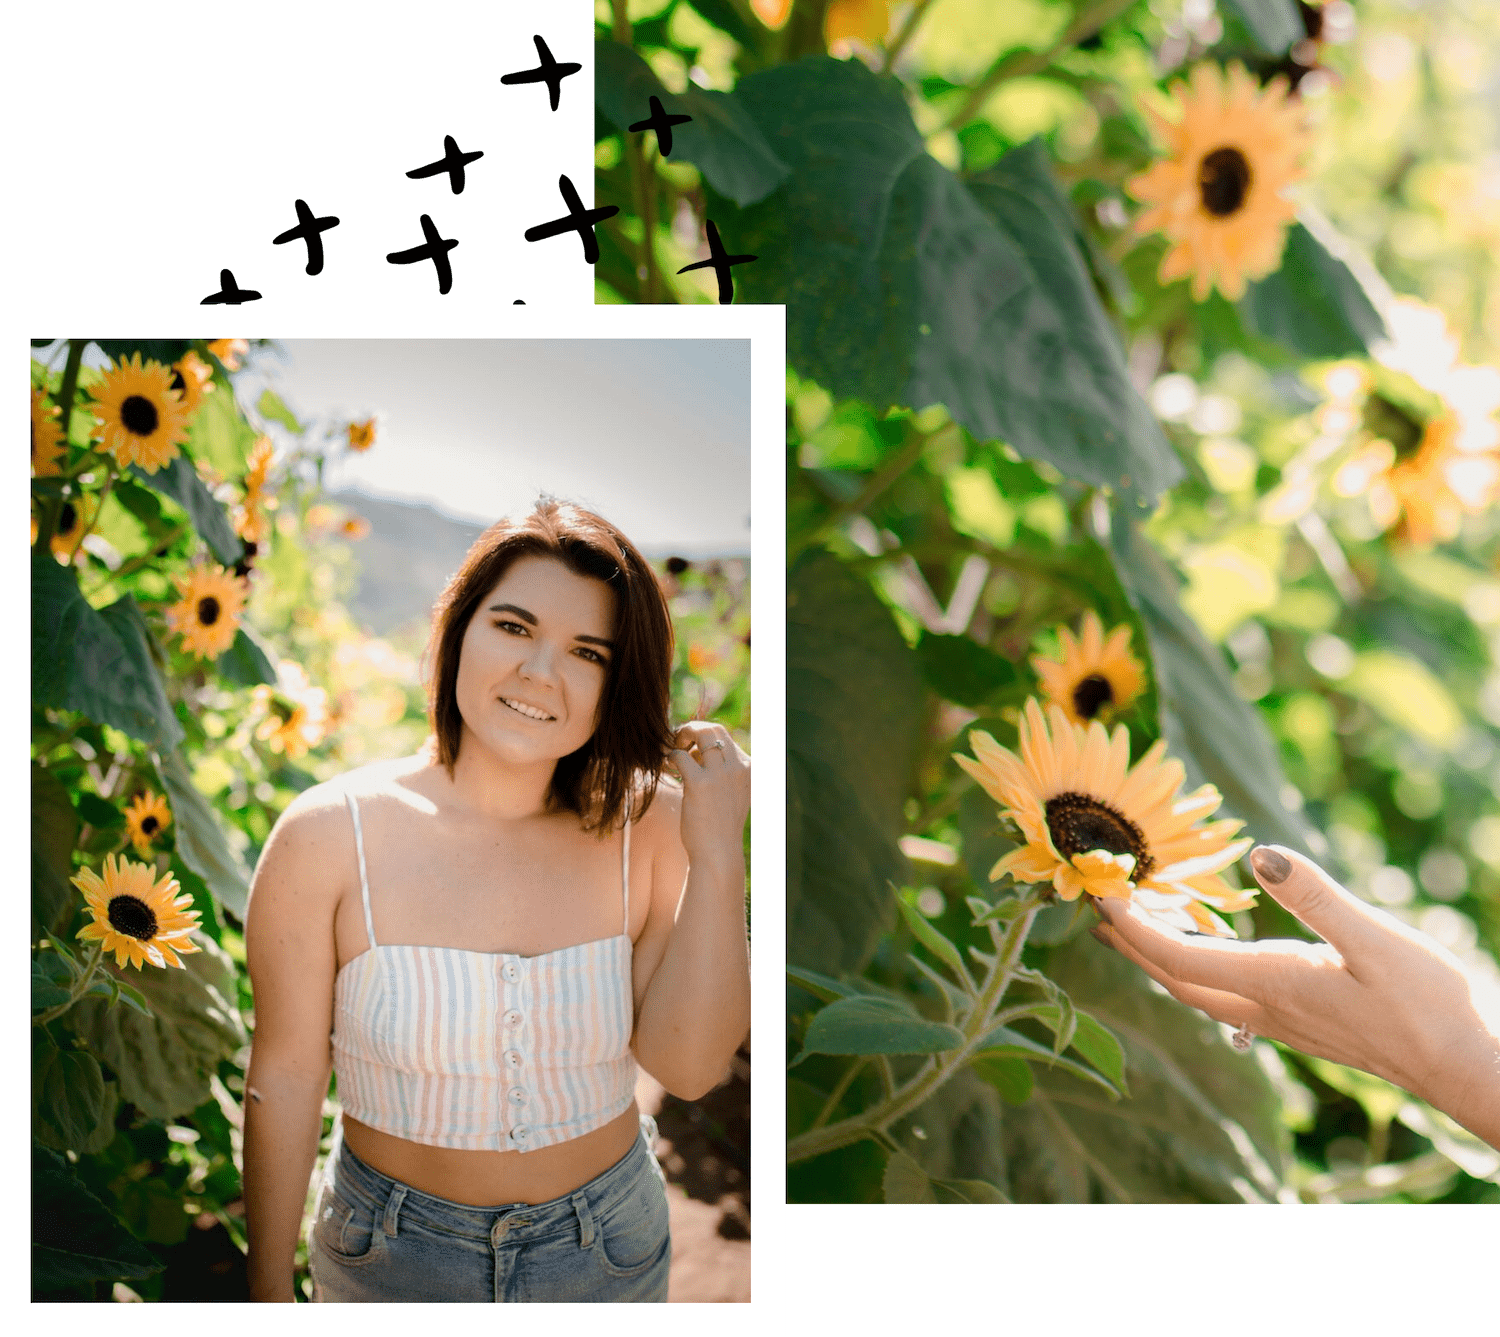 About me - Hey girl! I'm Chelsea, and I help resilient babes like YOU embrace self love, so you can finally feel comfortable & confident in your skin like you've always wanted (and deserved!).